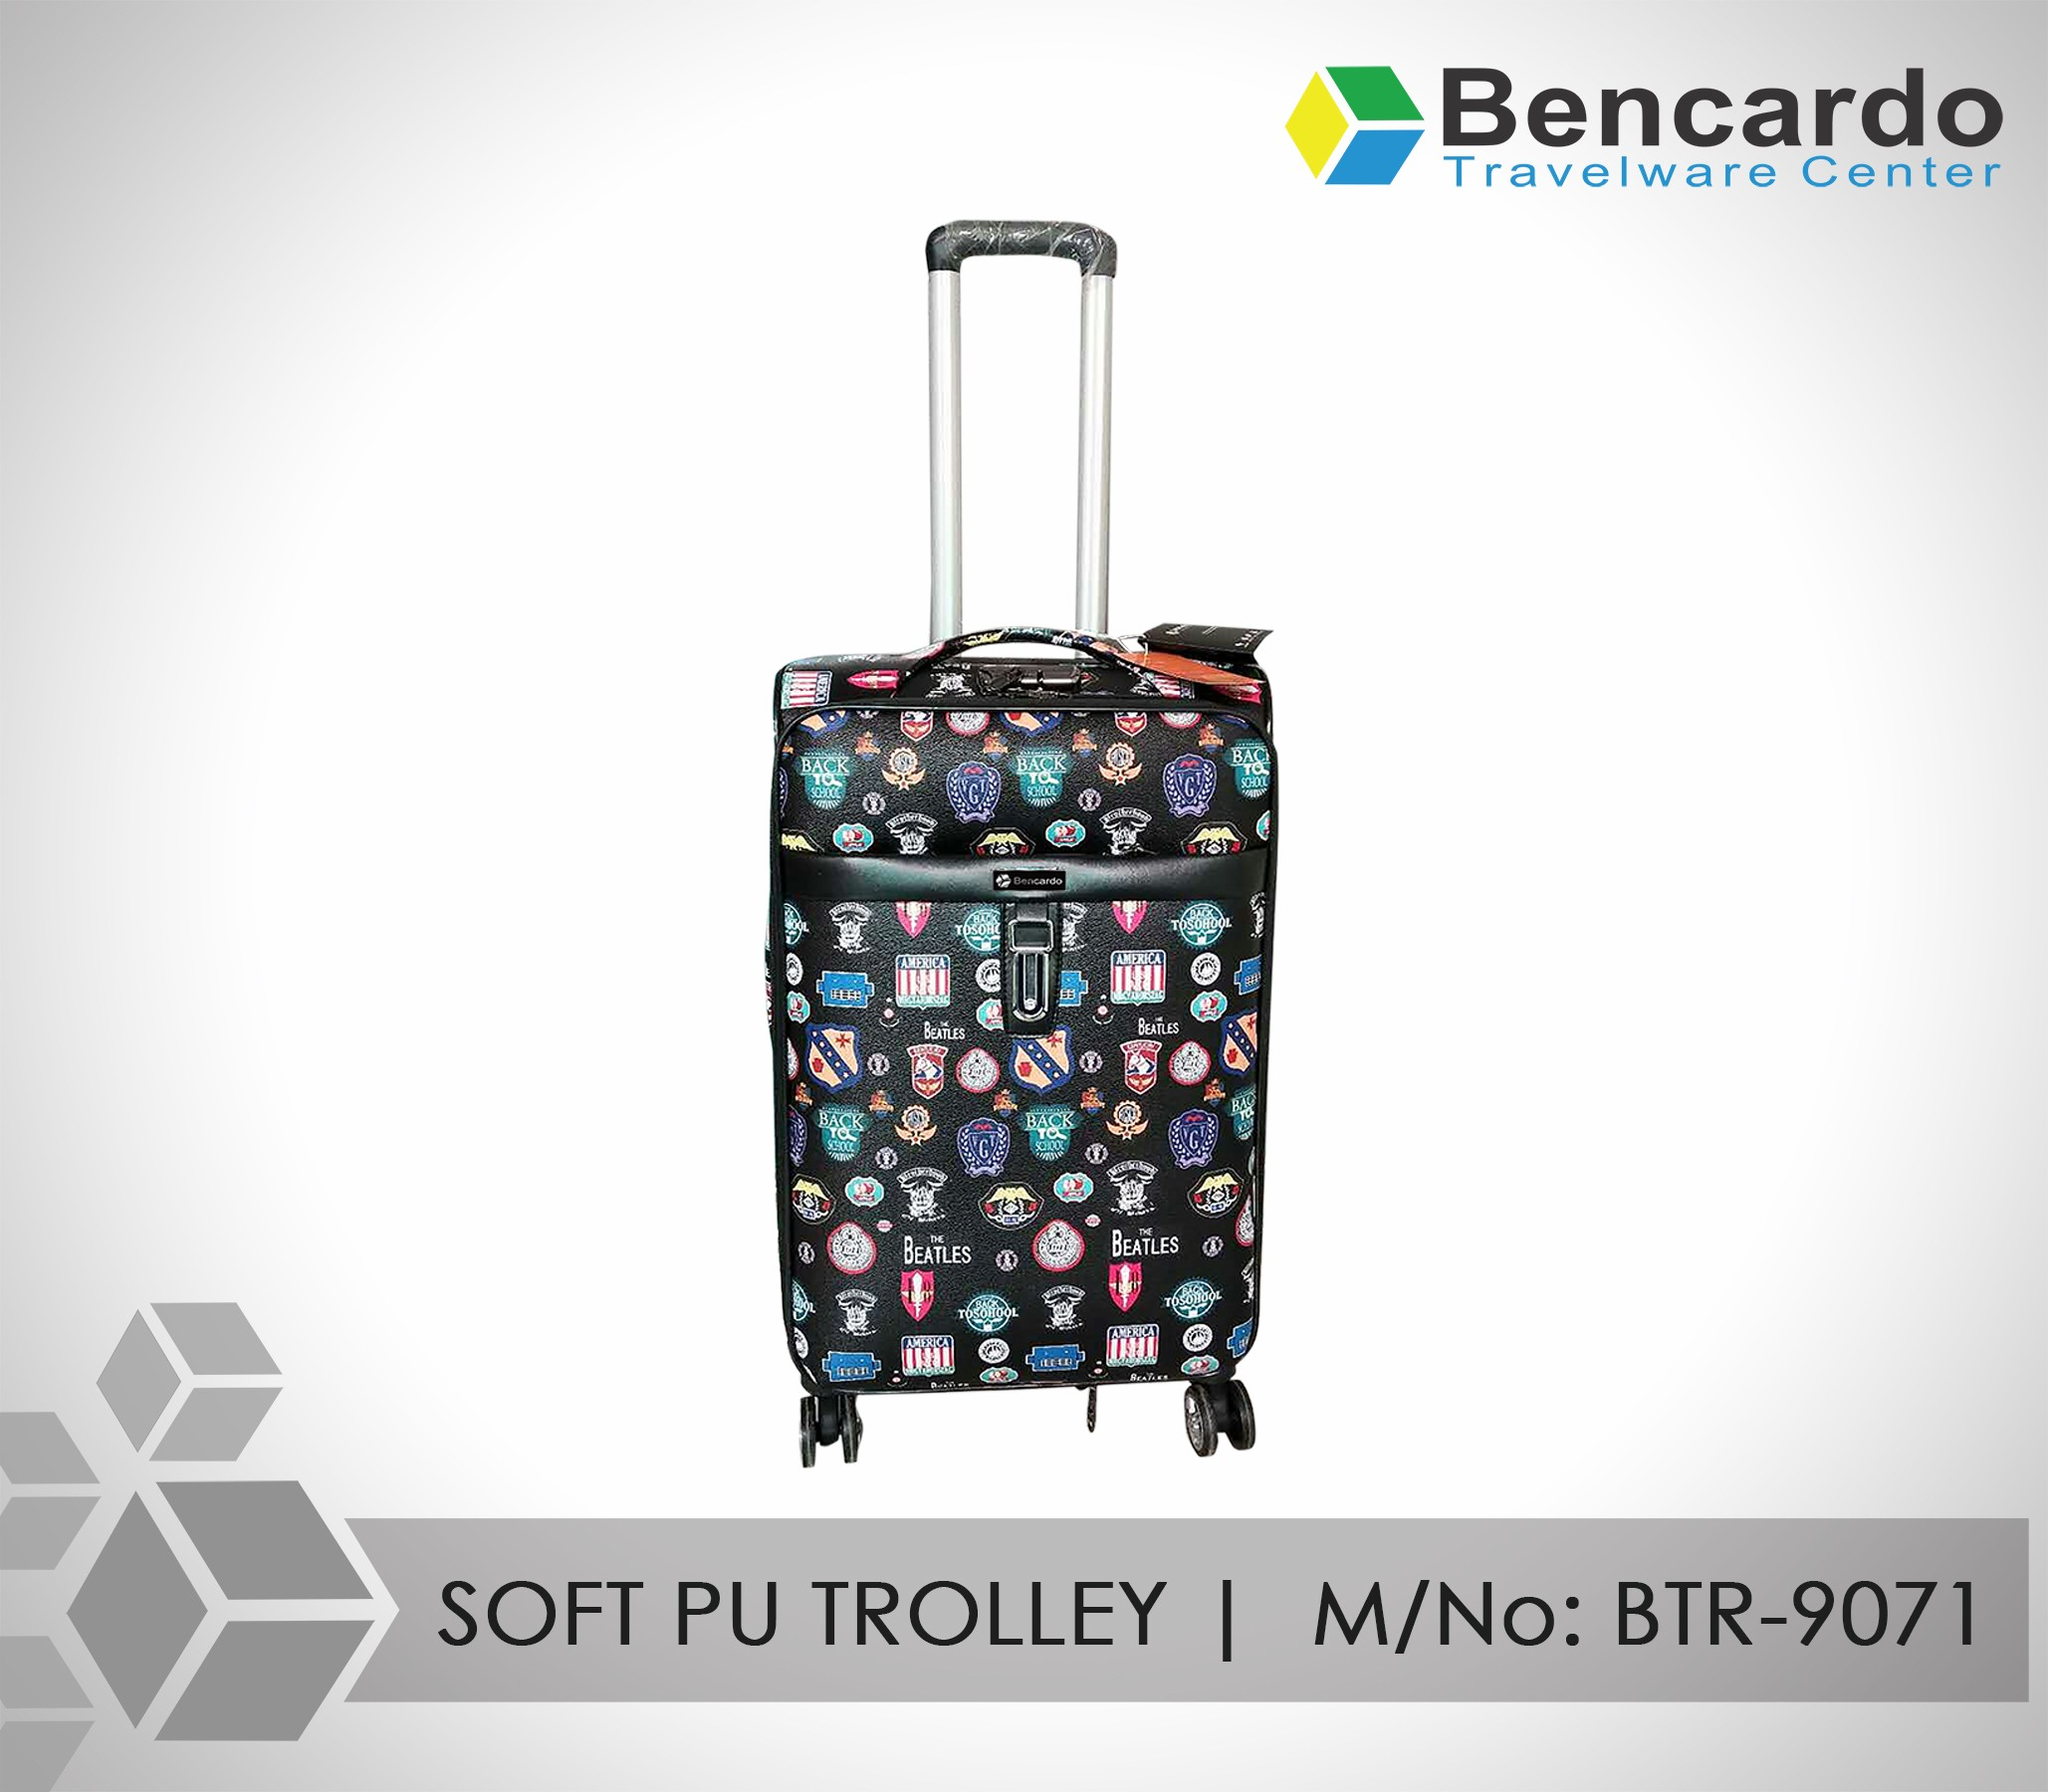 SOFT PU TROLLEY LUGGAGE-4 WHEELS-BTR-9071